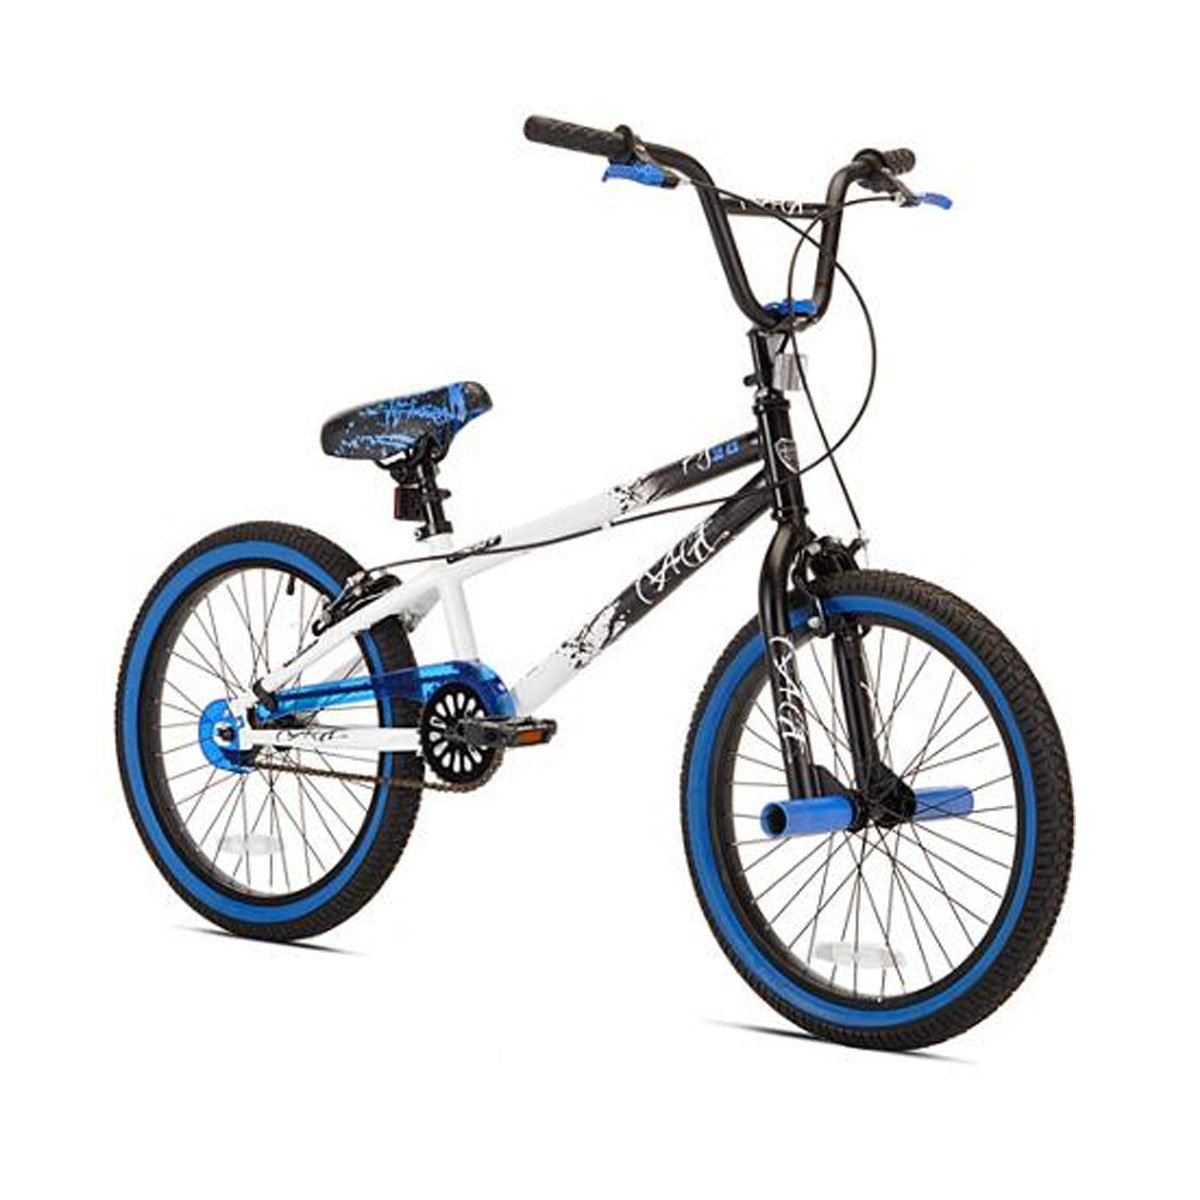 amazoncom bmx bikes cheap 20 freestyle stunt bicycle for kids sports or hobby 100 satisfaction guaranteed sports outdoors